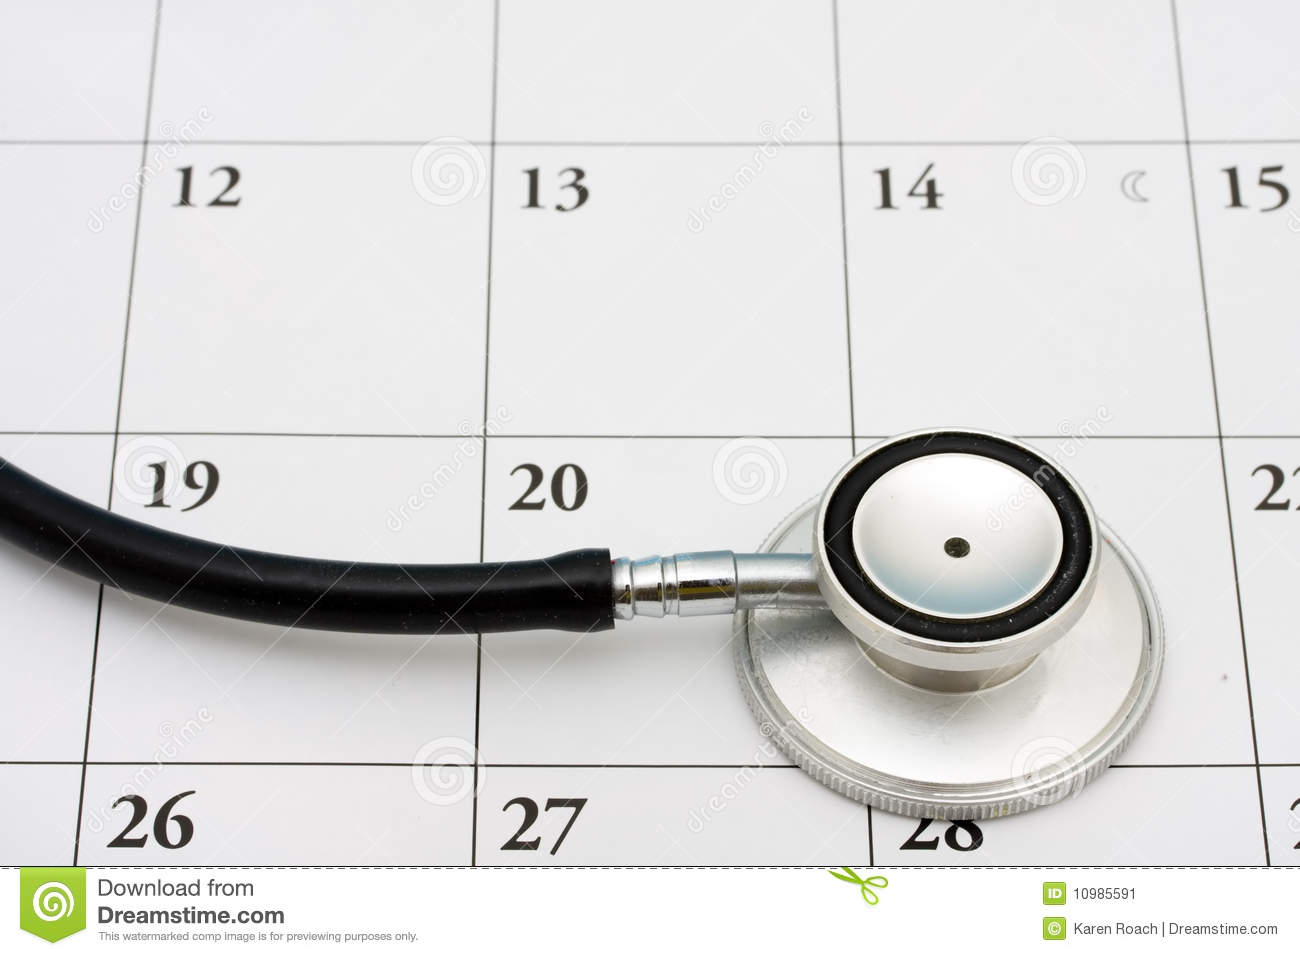 how to take an appointment for doctor